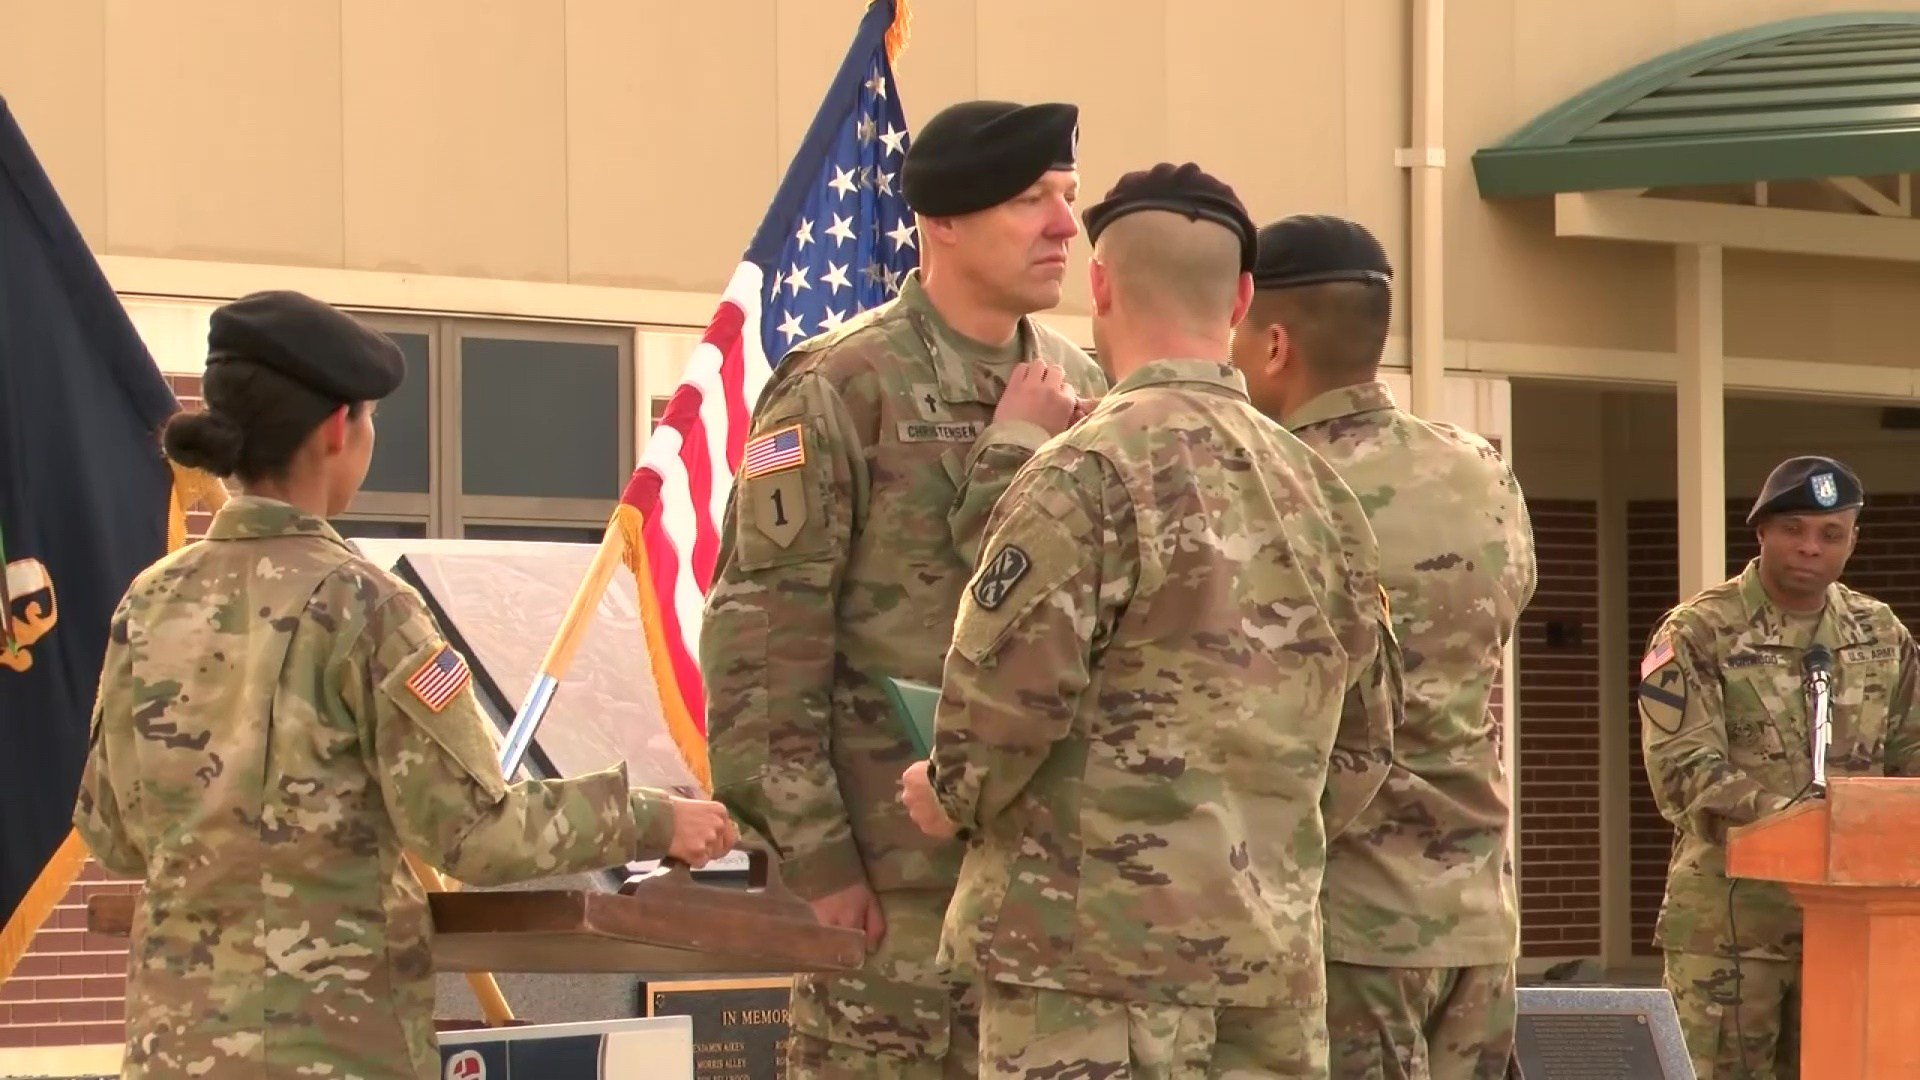 Captain Matthew Christensen was awarded the Soldier's Medal for his actions (U.S. Army photo)